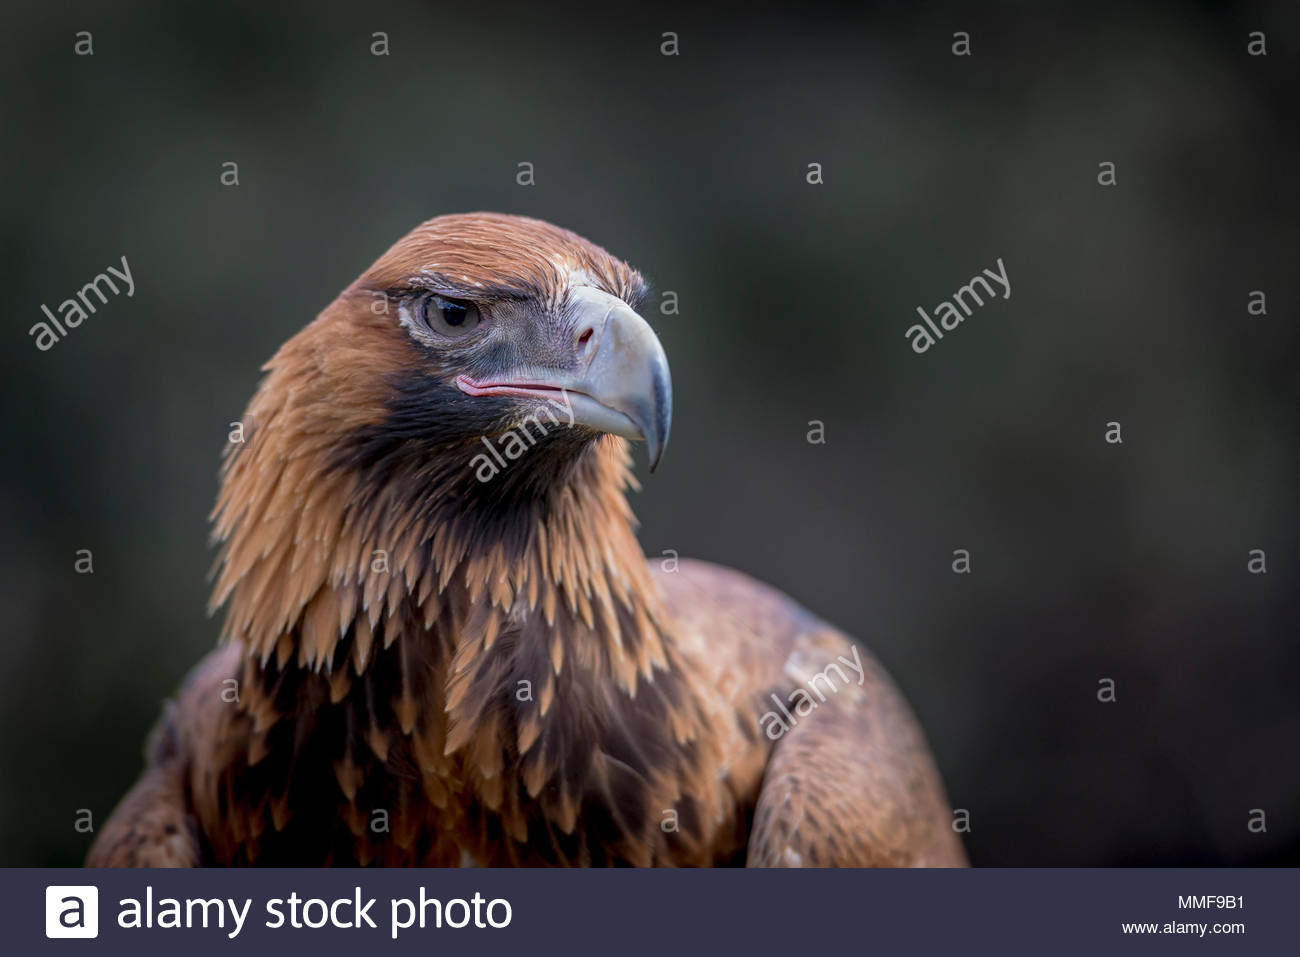 Portrait of the Australian wedge-tailed eagle, Aquila audax. - Stock Image